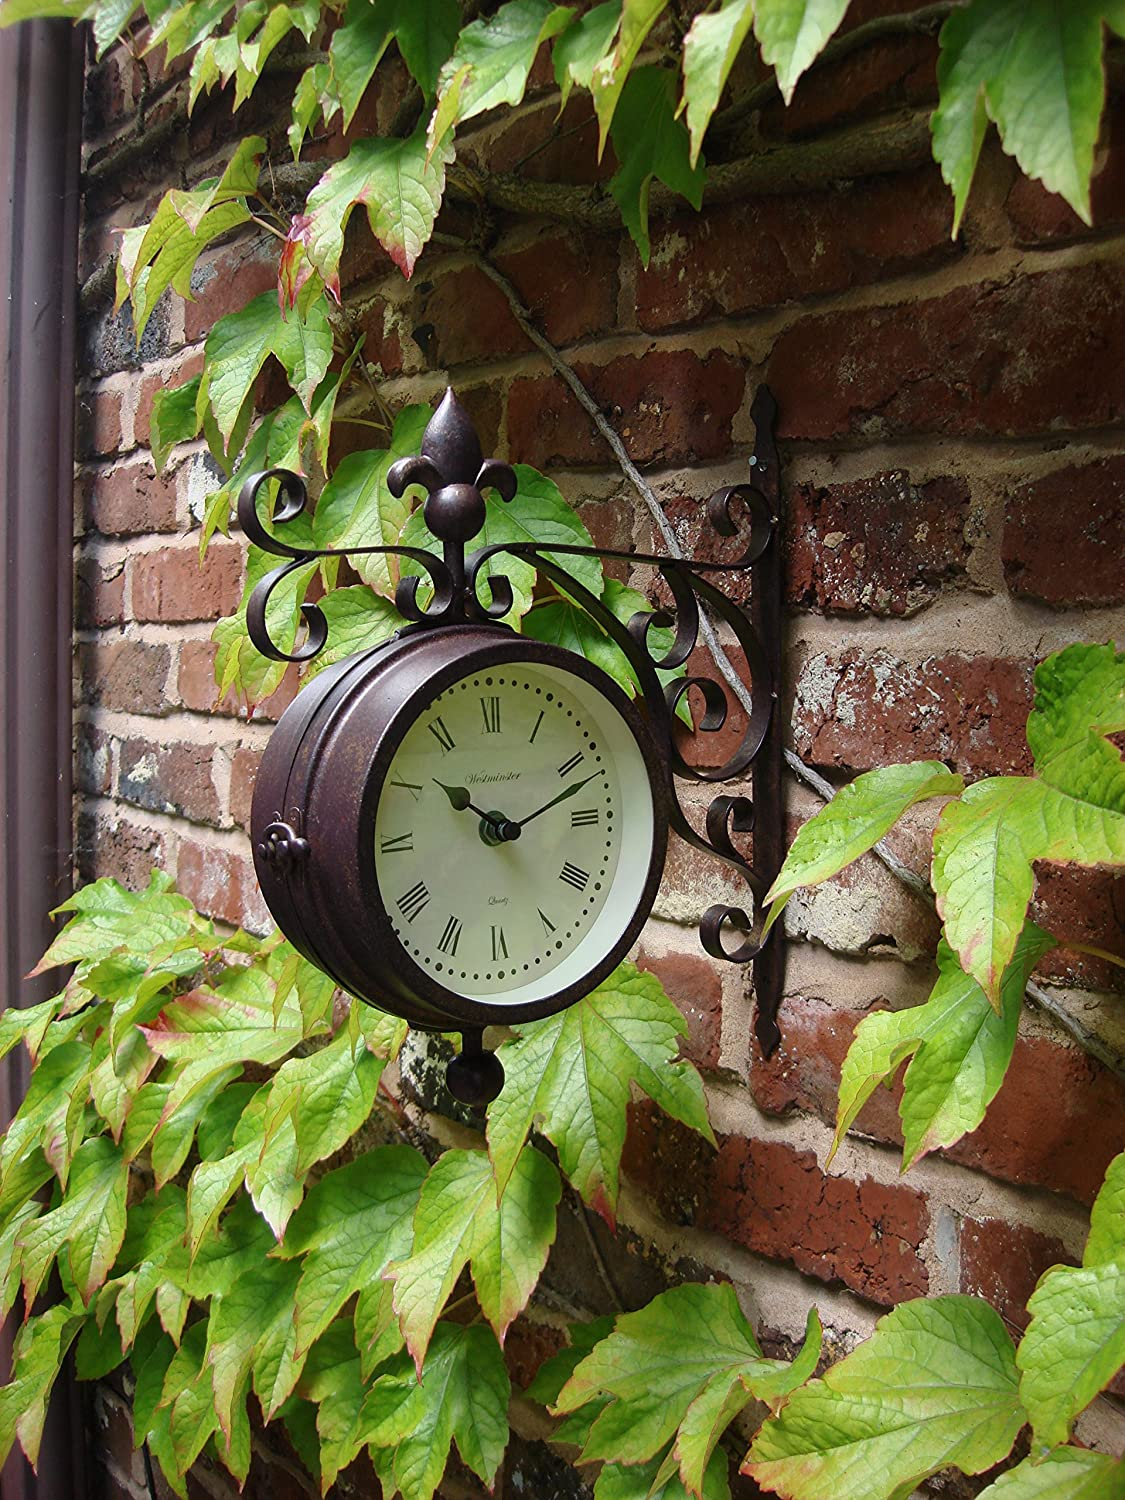 Outdoor indoor Clock double sided Thermometer Garden Wall Station Dia 14.5cm Home and Garden Products Ltd